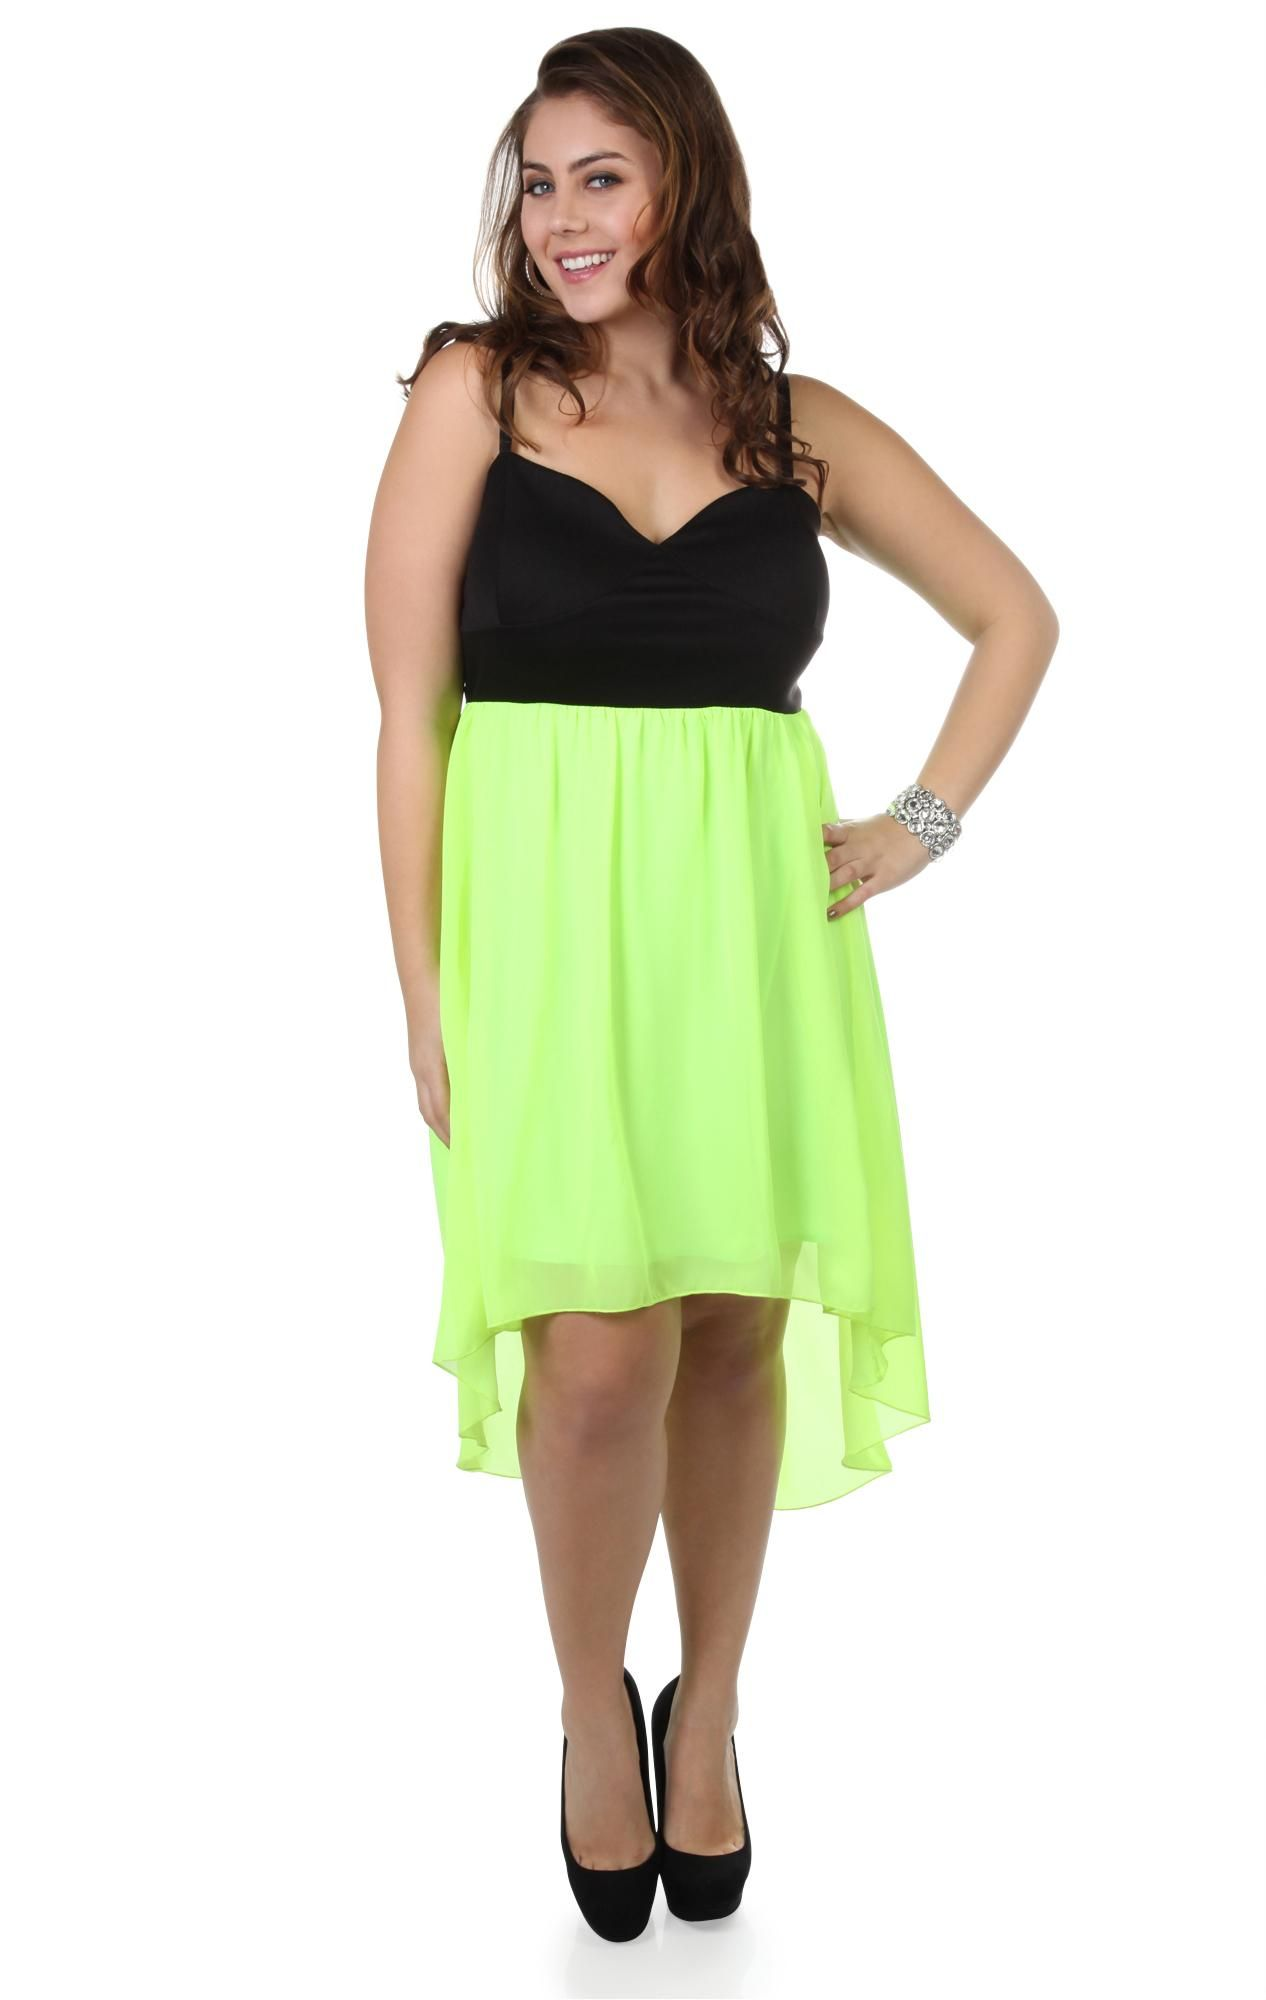 plus size corset style neon yellow high low dress - debshops.com ...